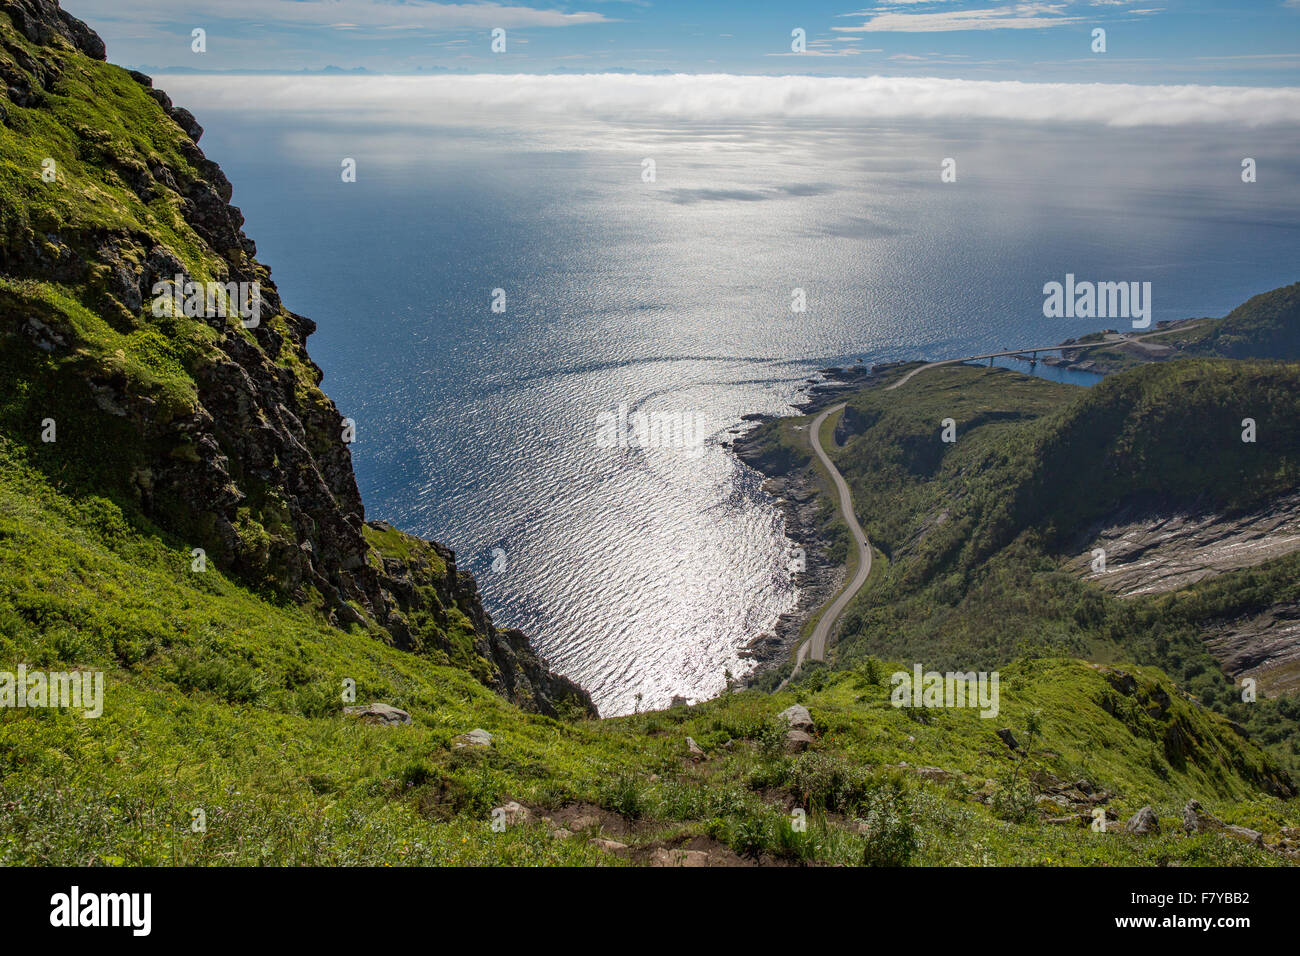 View from the ascent to Reinebringen in the Lofoten Islands Norway looking back towards Moskenes and the E10 highway - Stock Image